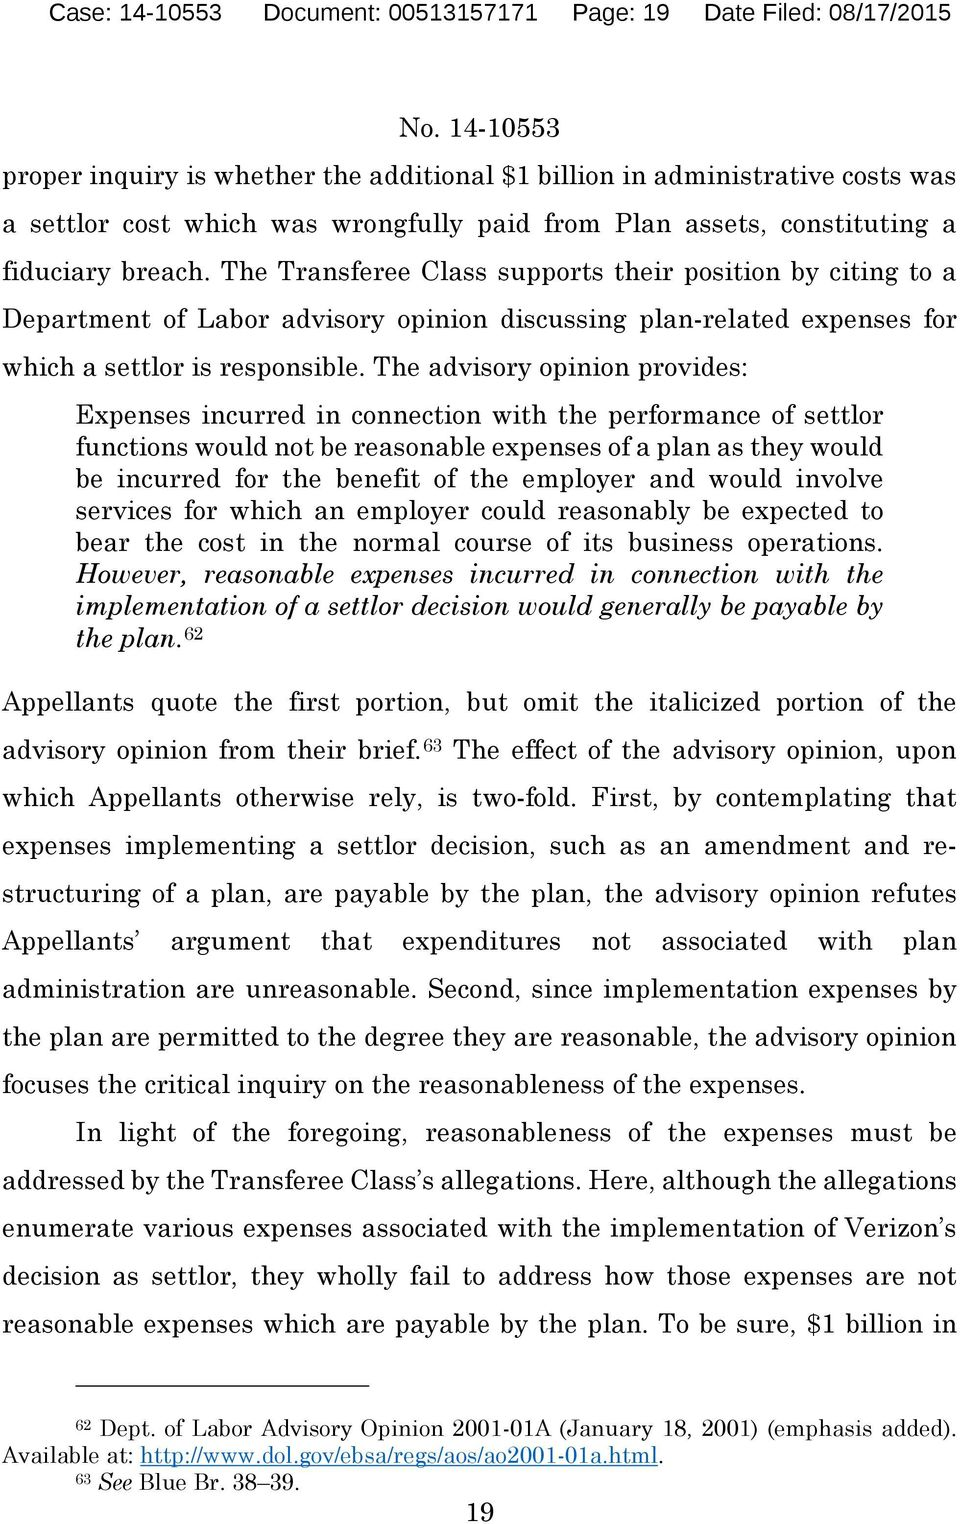 The Transferee Class supports their position by citing to a Department of Labor advisory opinion discussing plan-related expenses for which a settlor is responsible.